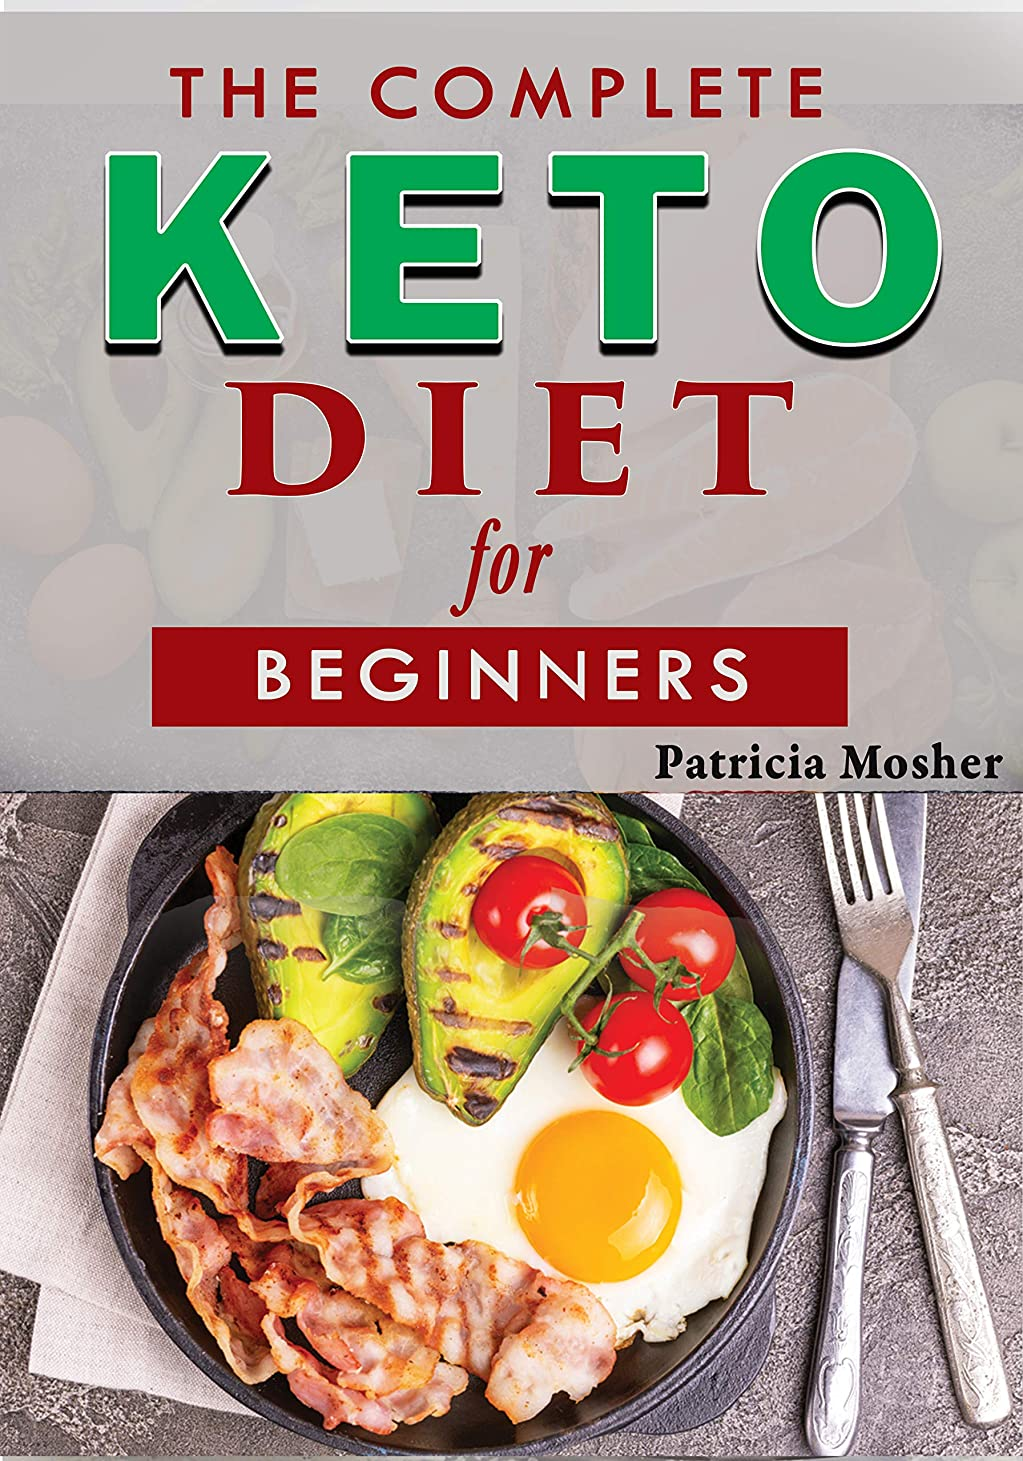 The Complete Keto Diet for Beginners: An Ultimate Meal Plan Guide On How To Burn Fat Fast With The Ketogenic Diet - Quick, Easy and Tasty Nutritious Recipes ... for Beginners Book Book 1) (English Edition)